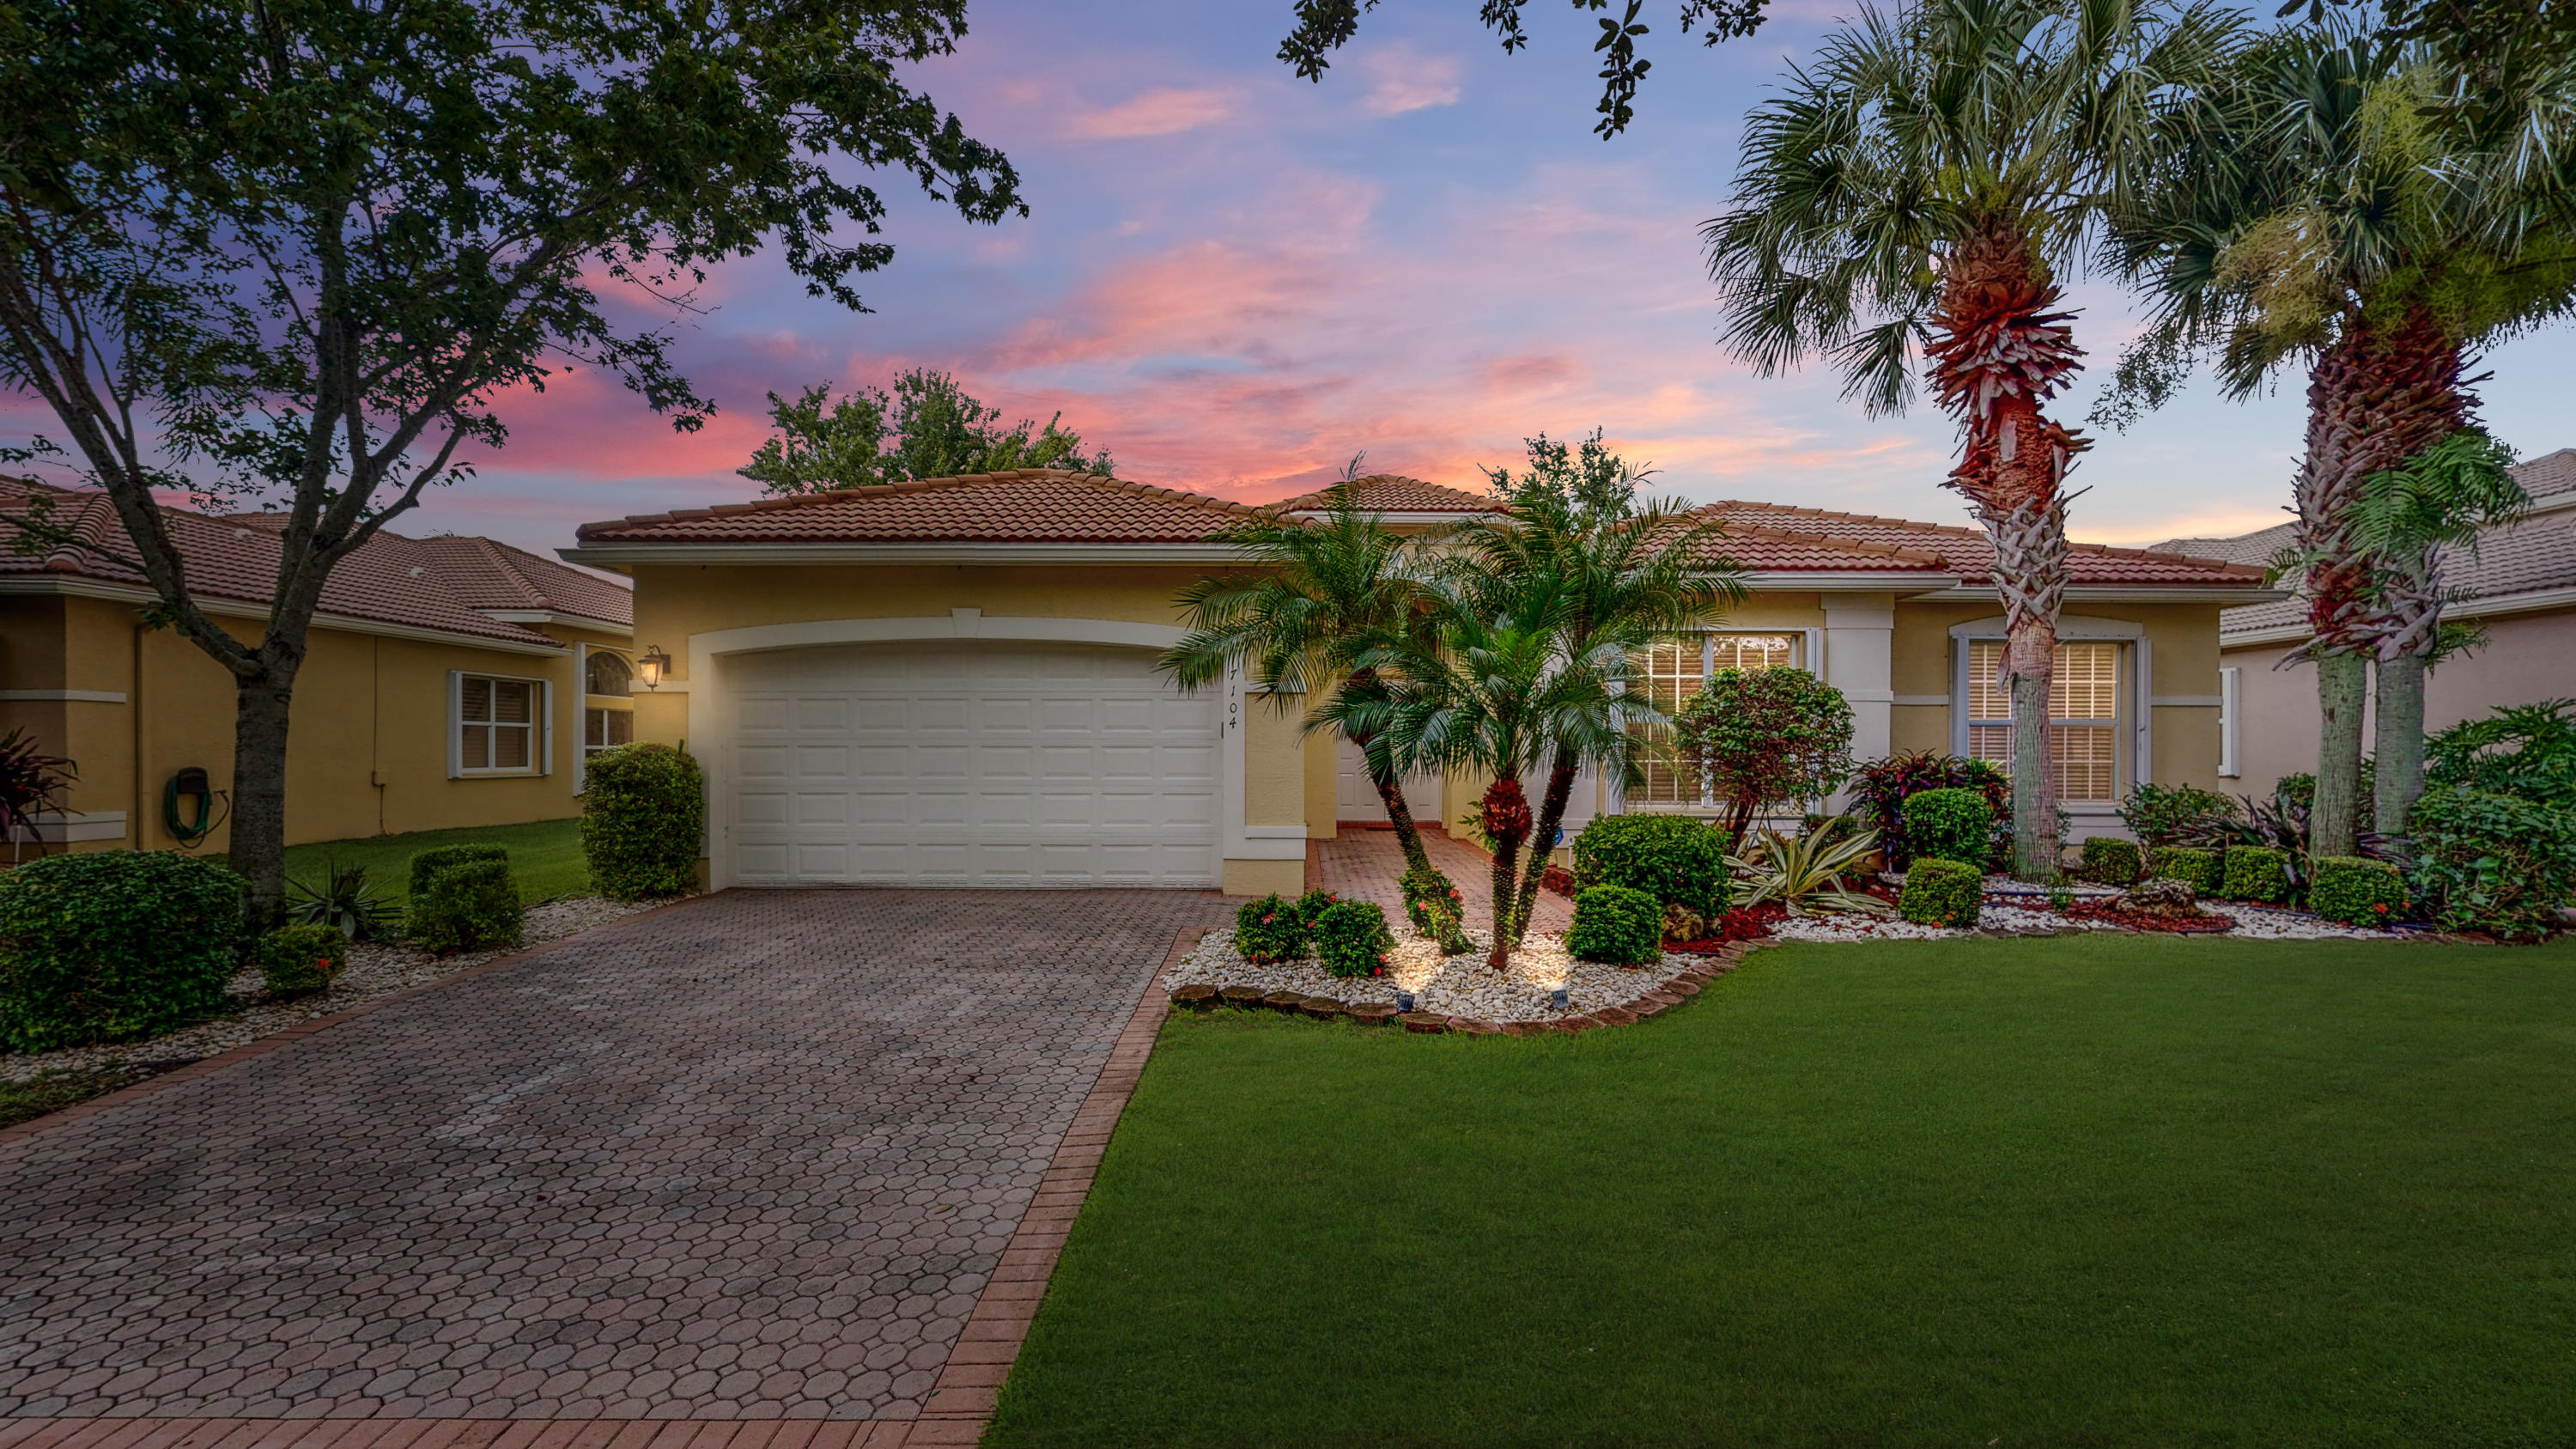 Photo of 7104 Corning Circle, Boynton Beach, FL 33437